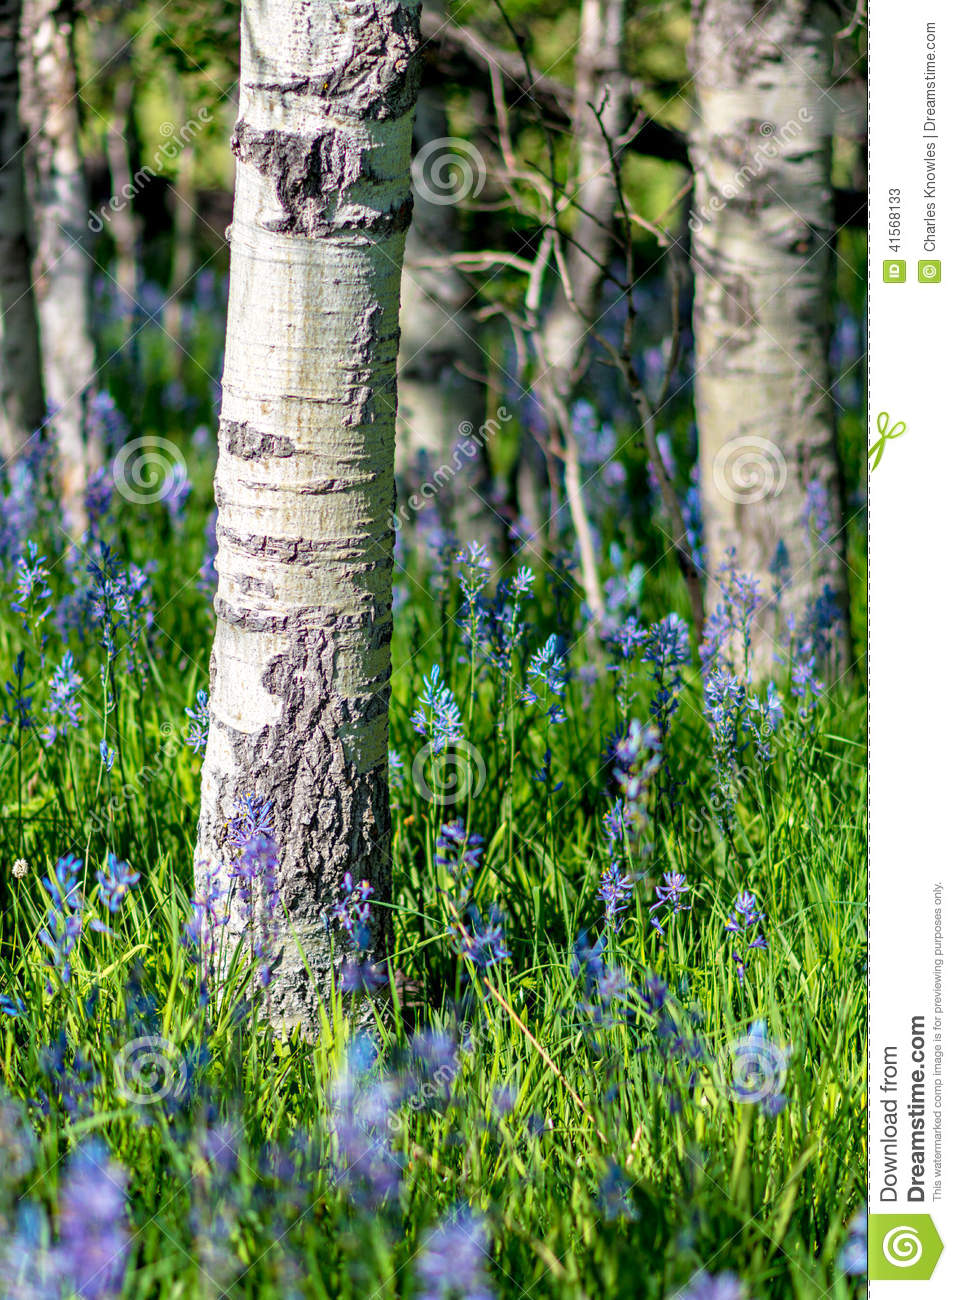 Blue wild flowers in a grove of aspen trees stock photo image 41568133 - Flowers that grow on tree trunks ...